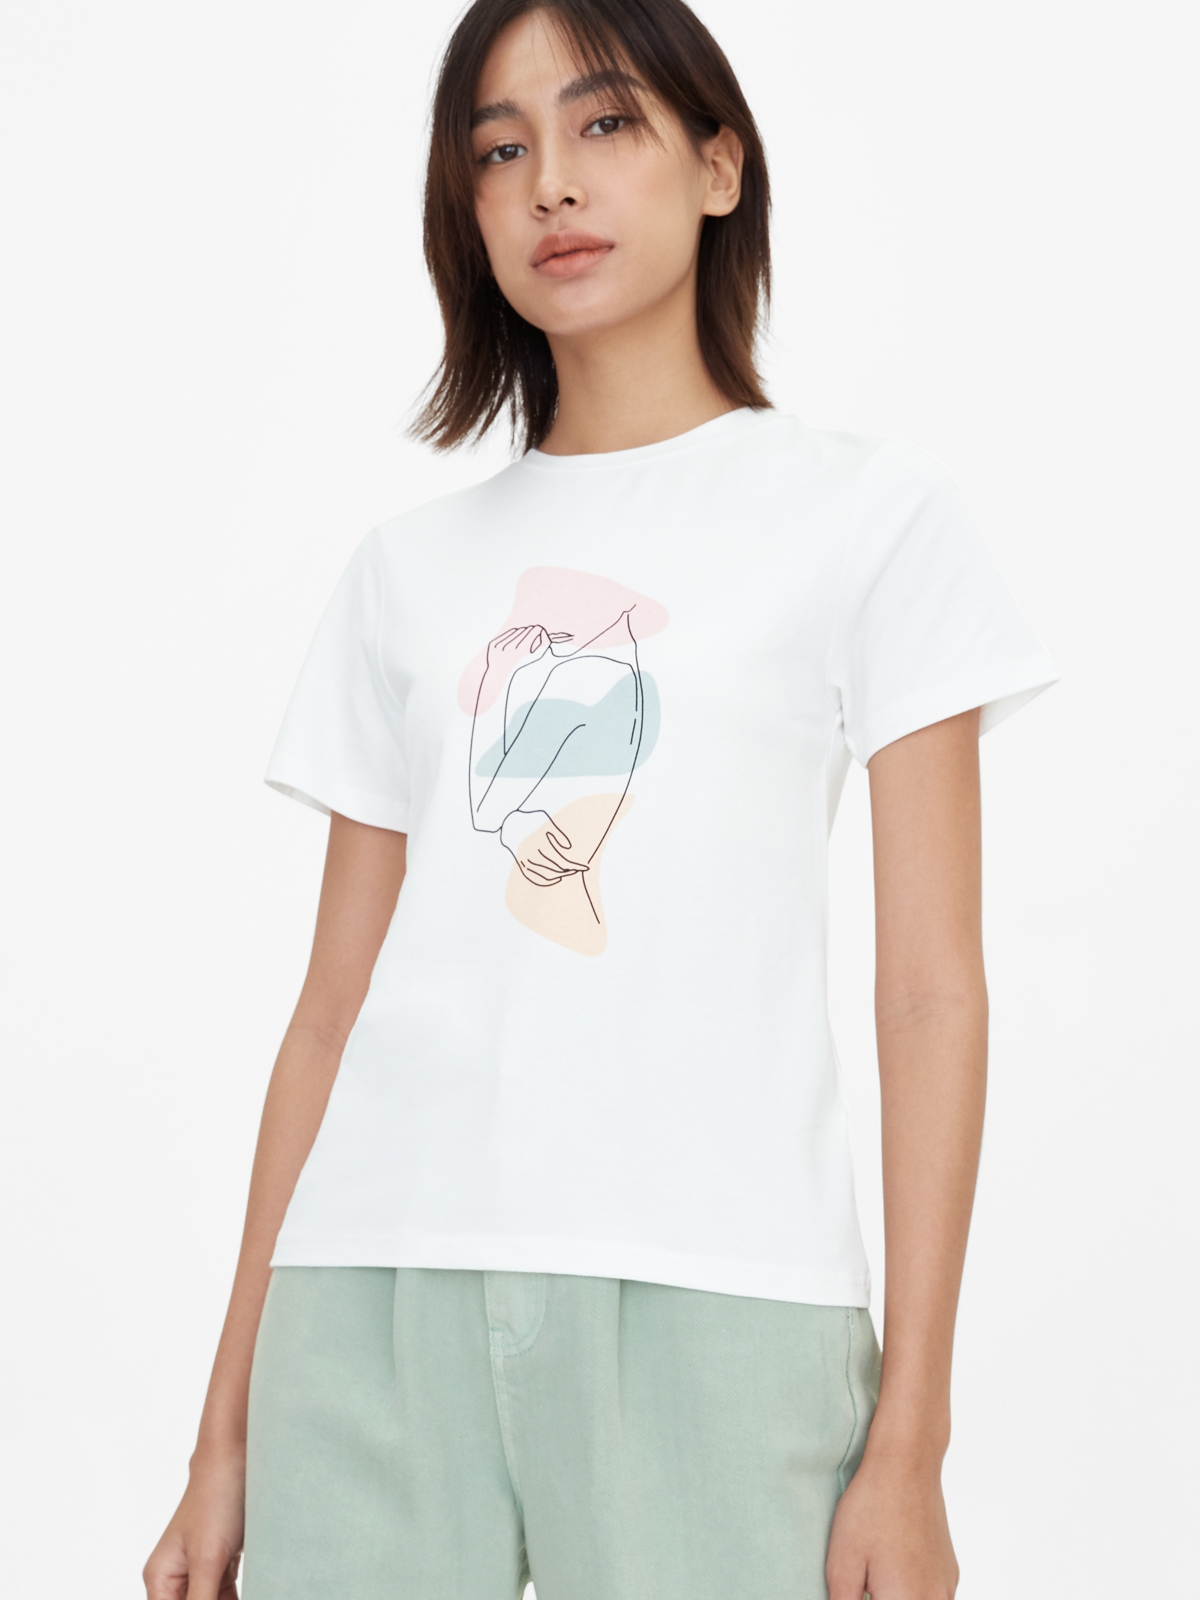 Woman Silhouette Graphic Tee OffWhite